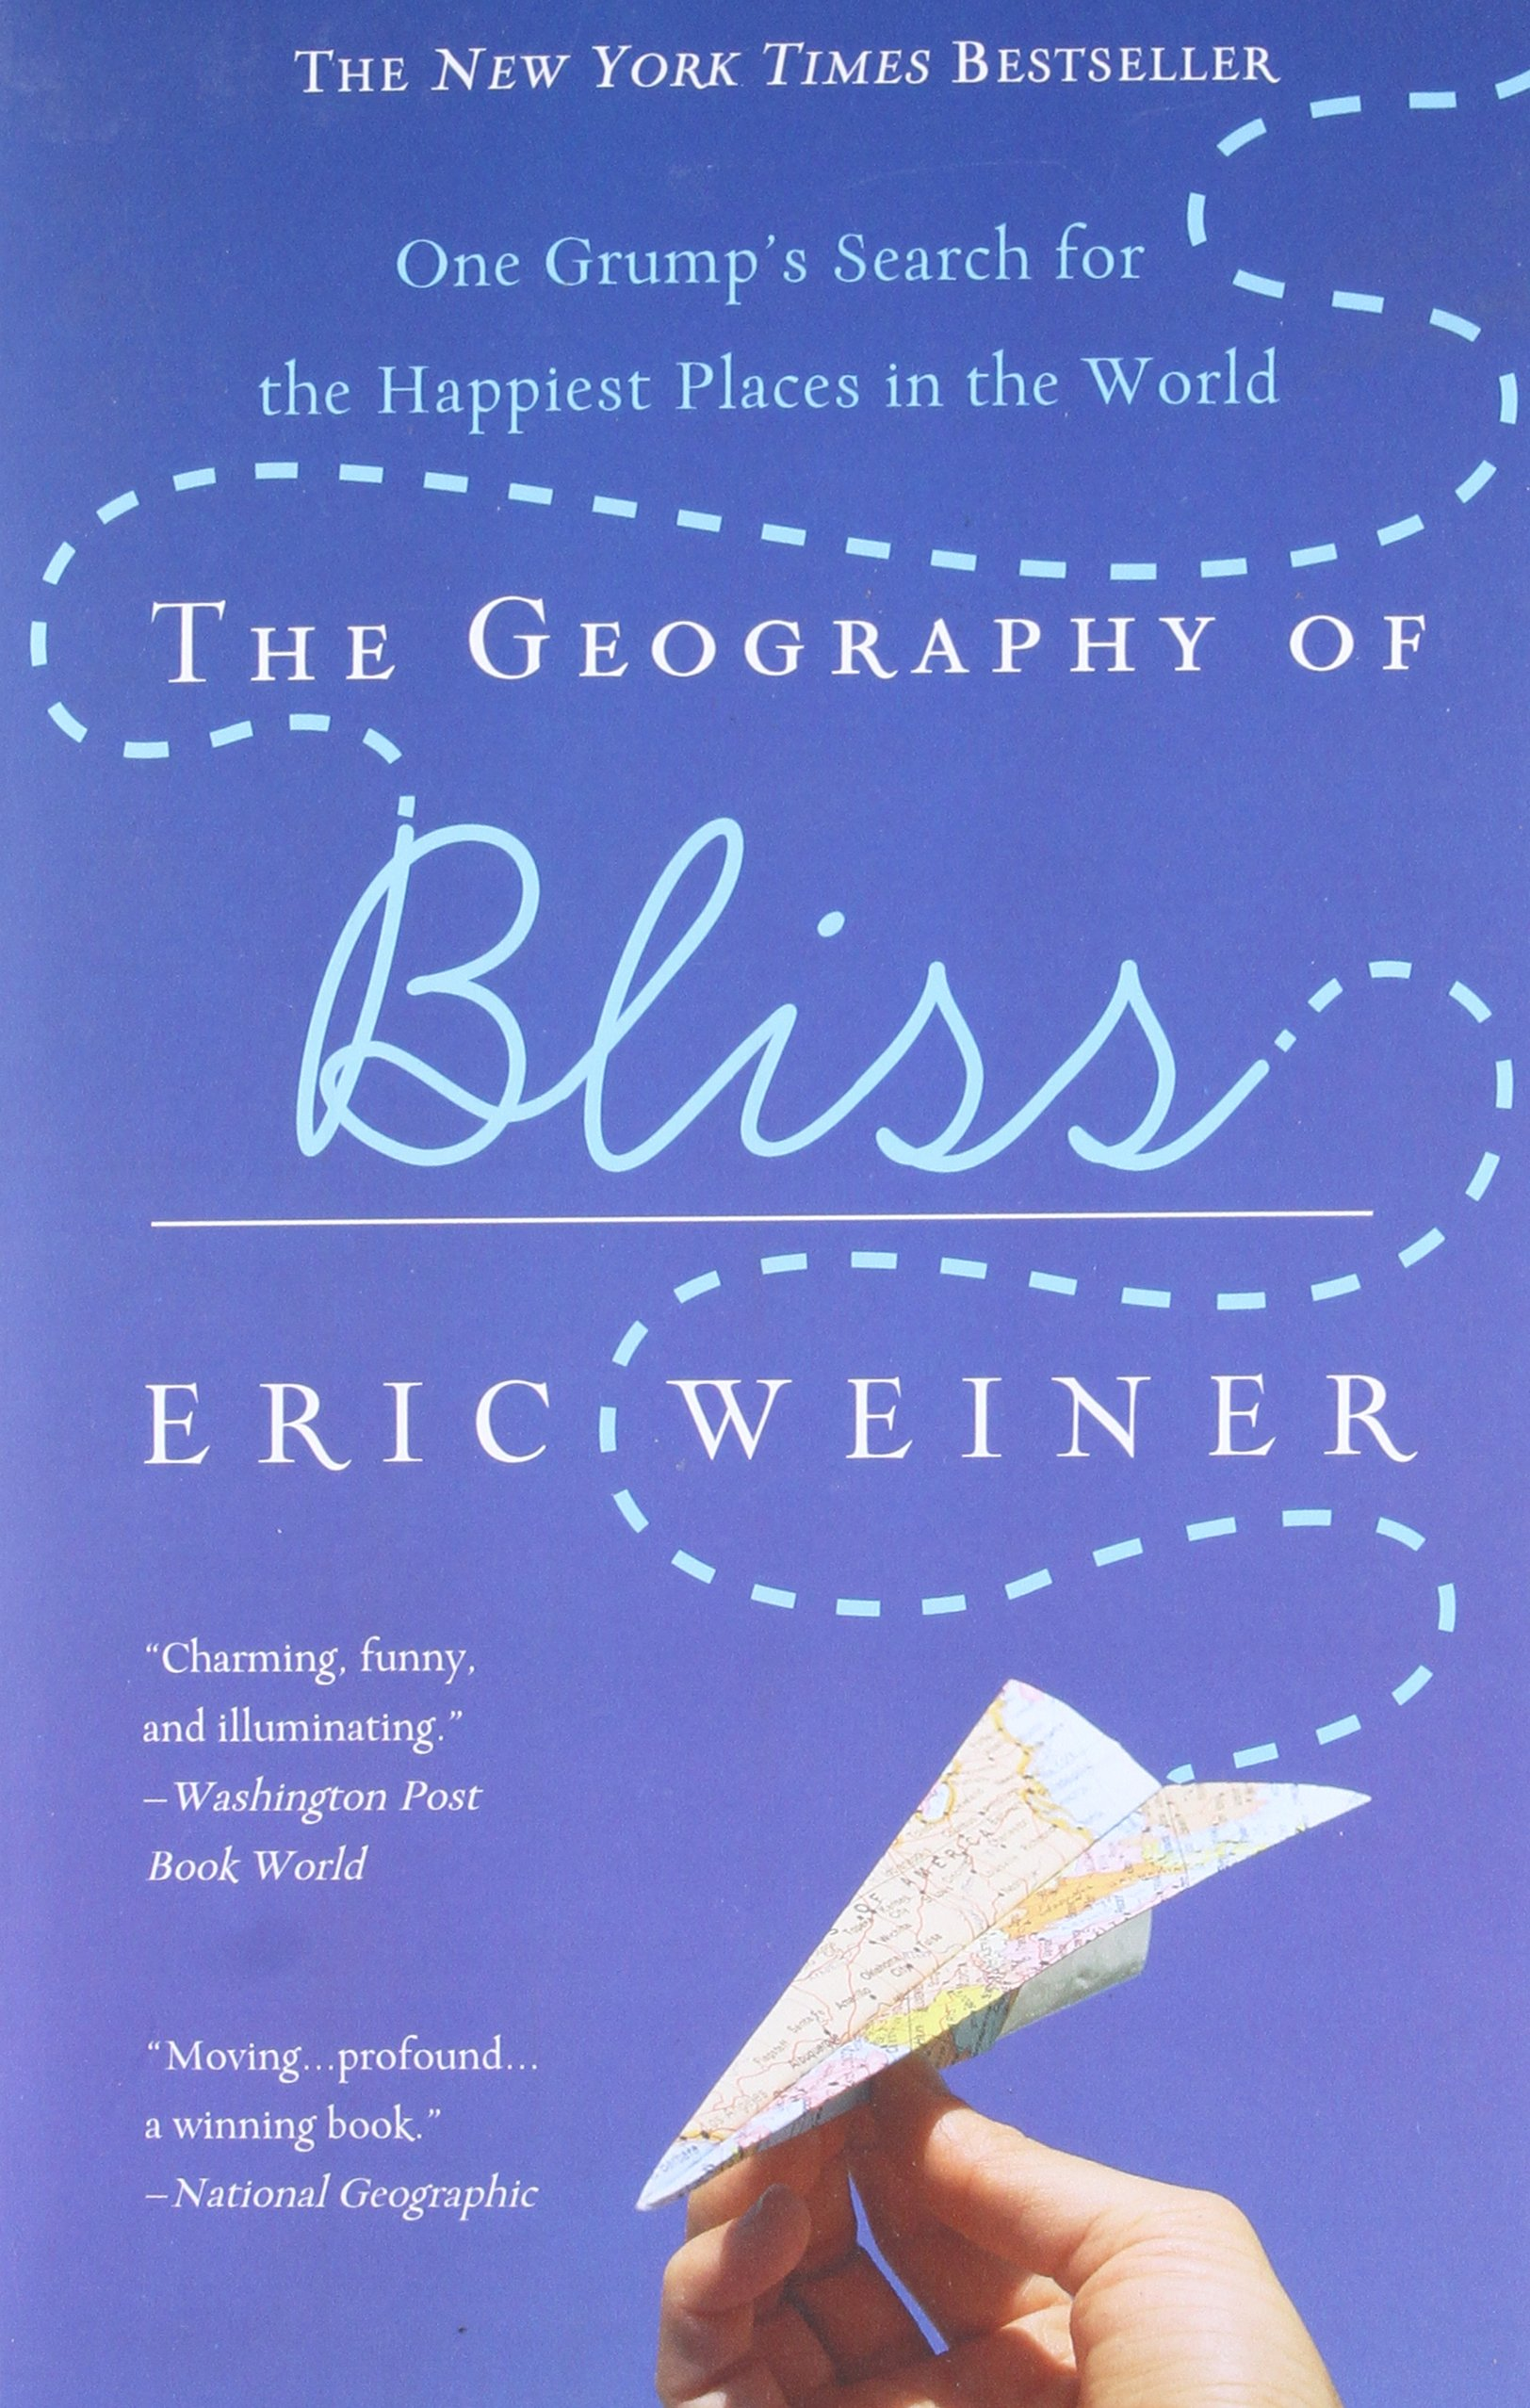 The geography of bliss one grumps search for the happiest places the geography of bliss one grumps search for the happiest places in the world eric weiner 9780446698894 amazon books fandeluxe Images